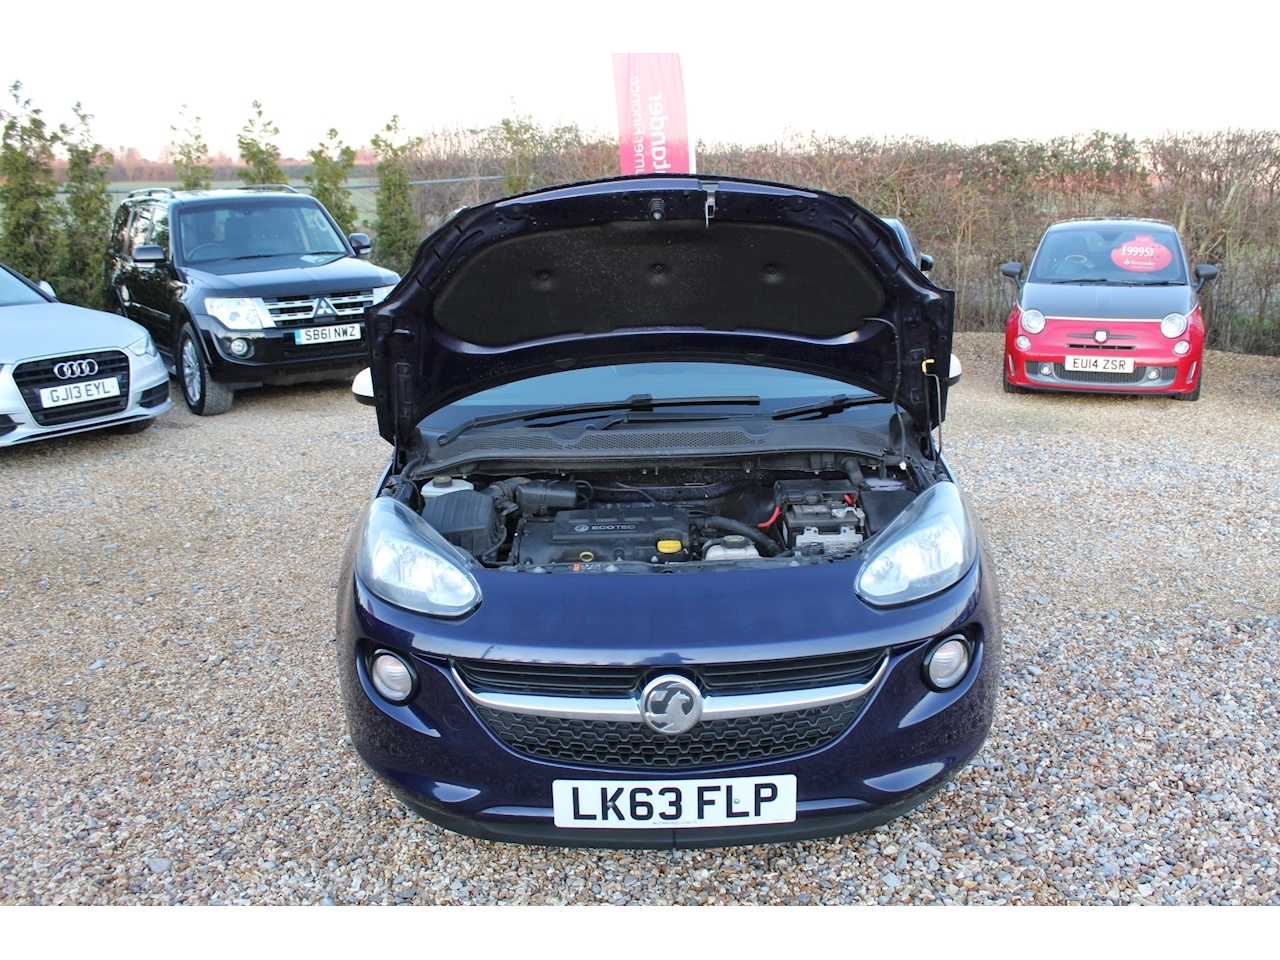 Vauxhall Adam Glam Hatchback 1.4 Manual Petrol